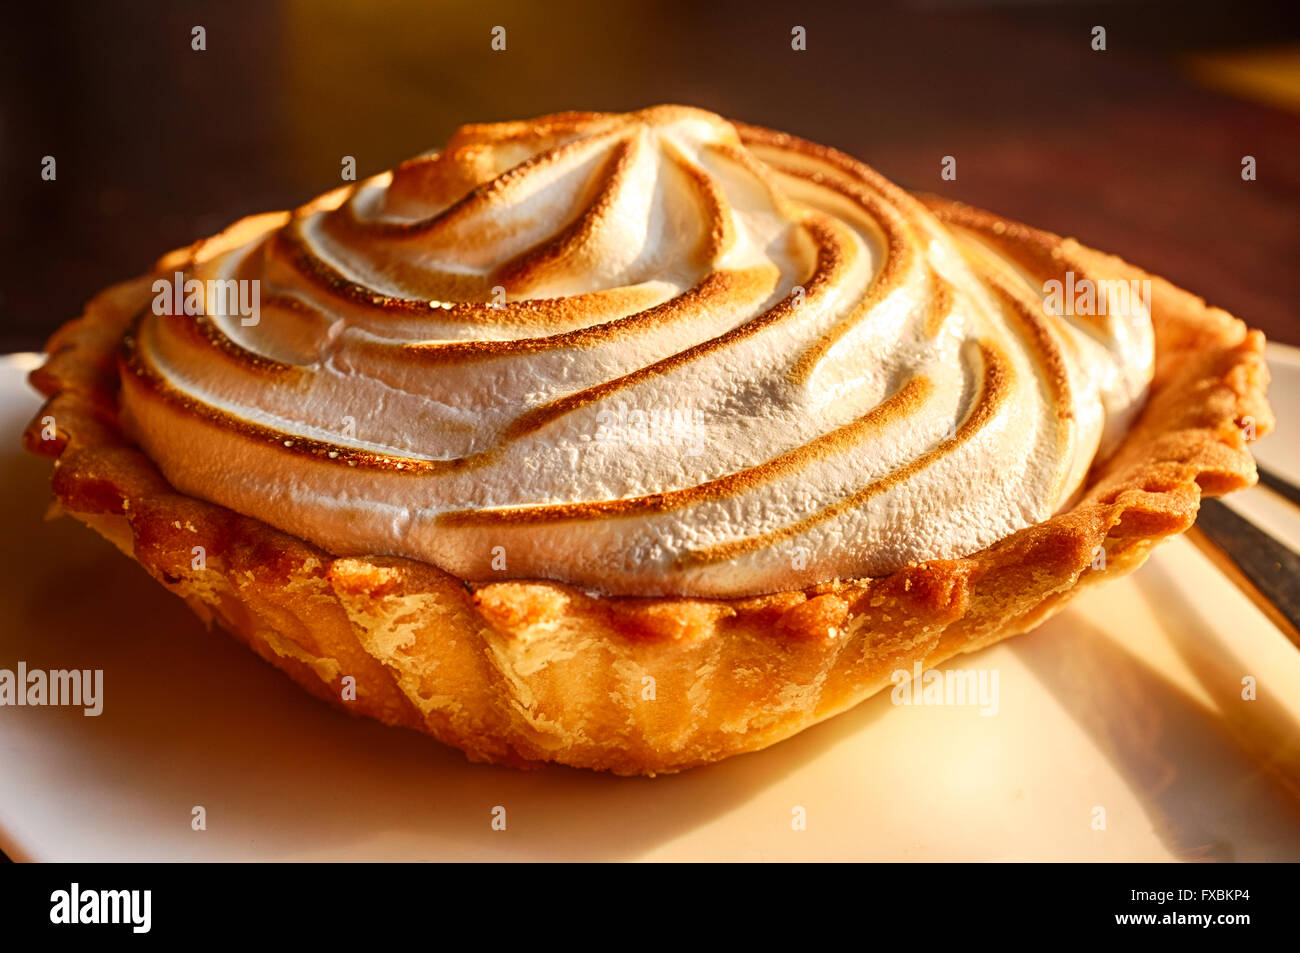 Close up shot of a lemon meringue pie - Stock Image